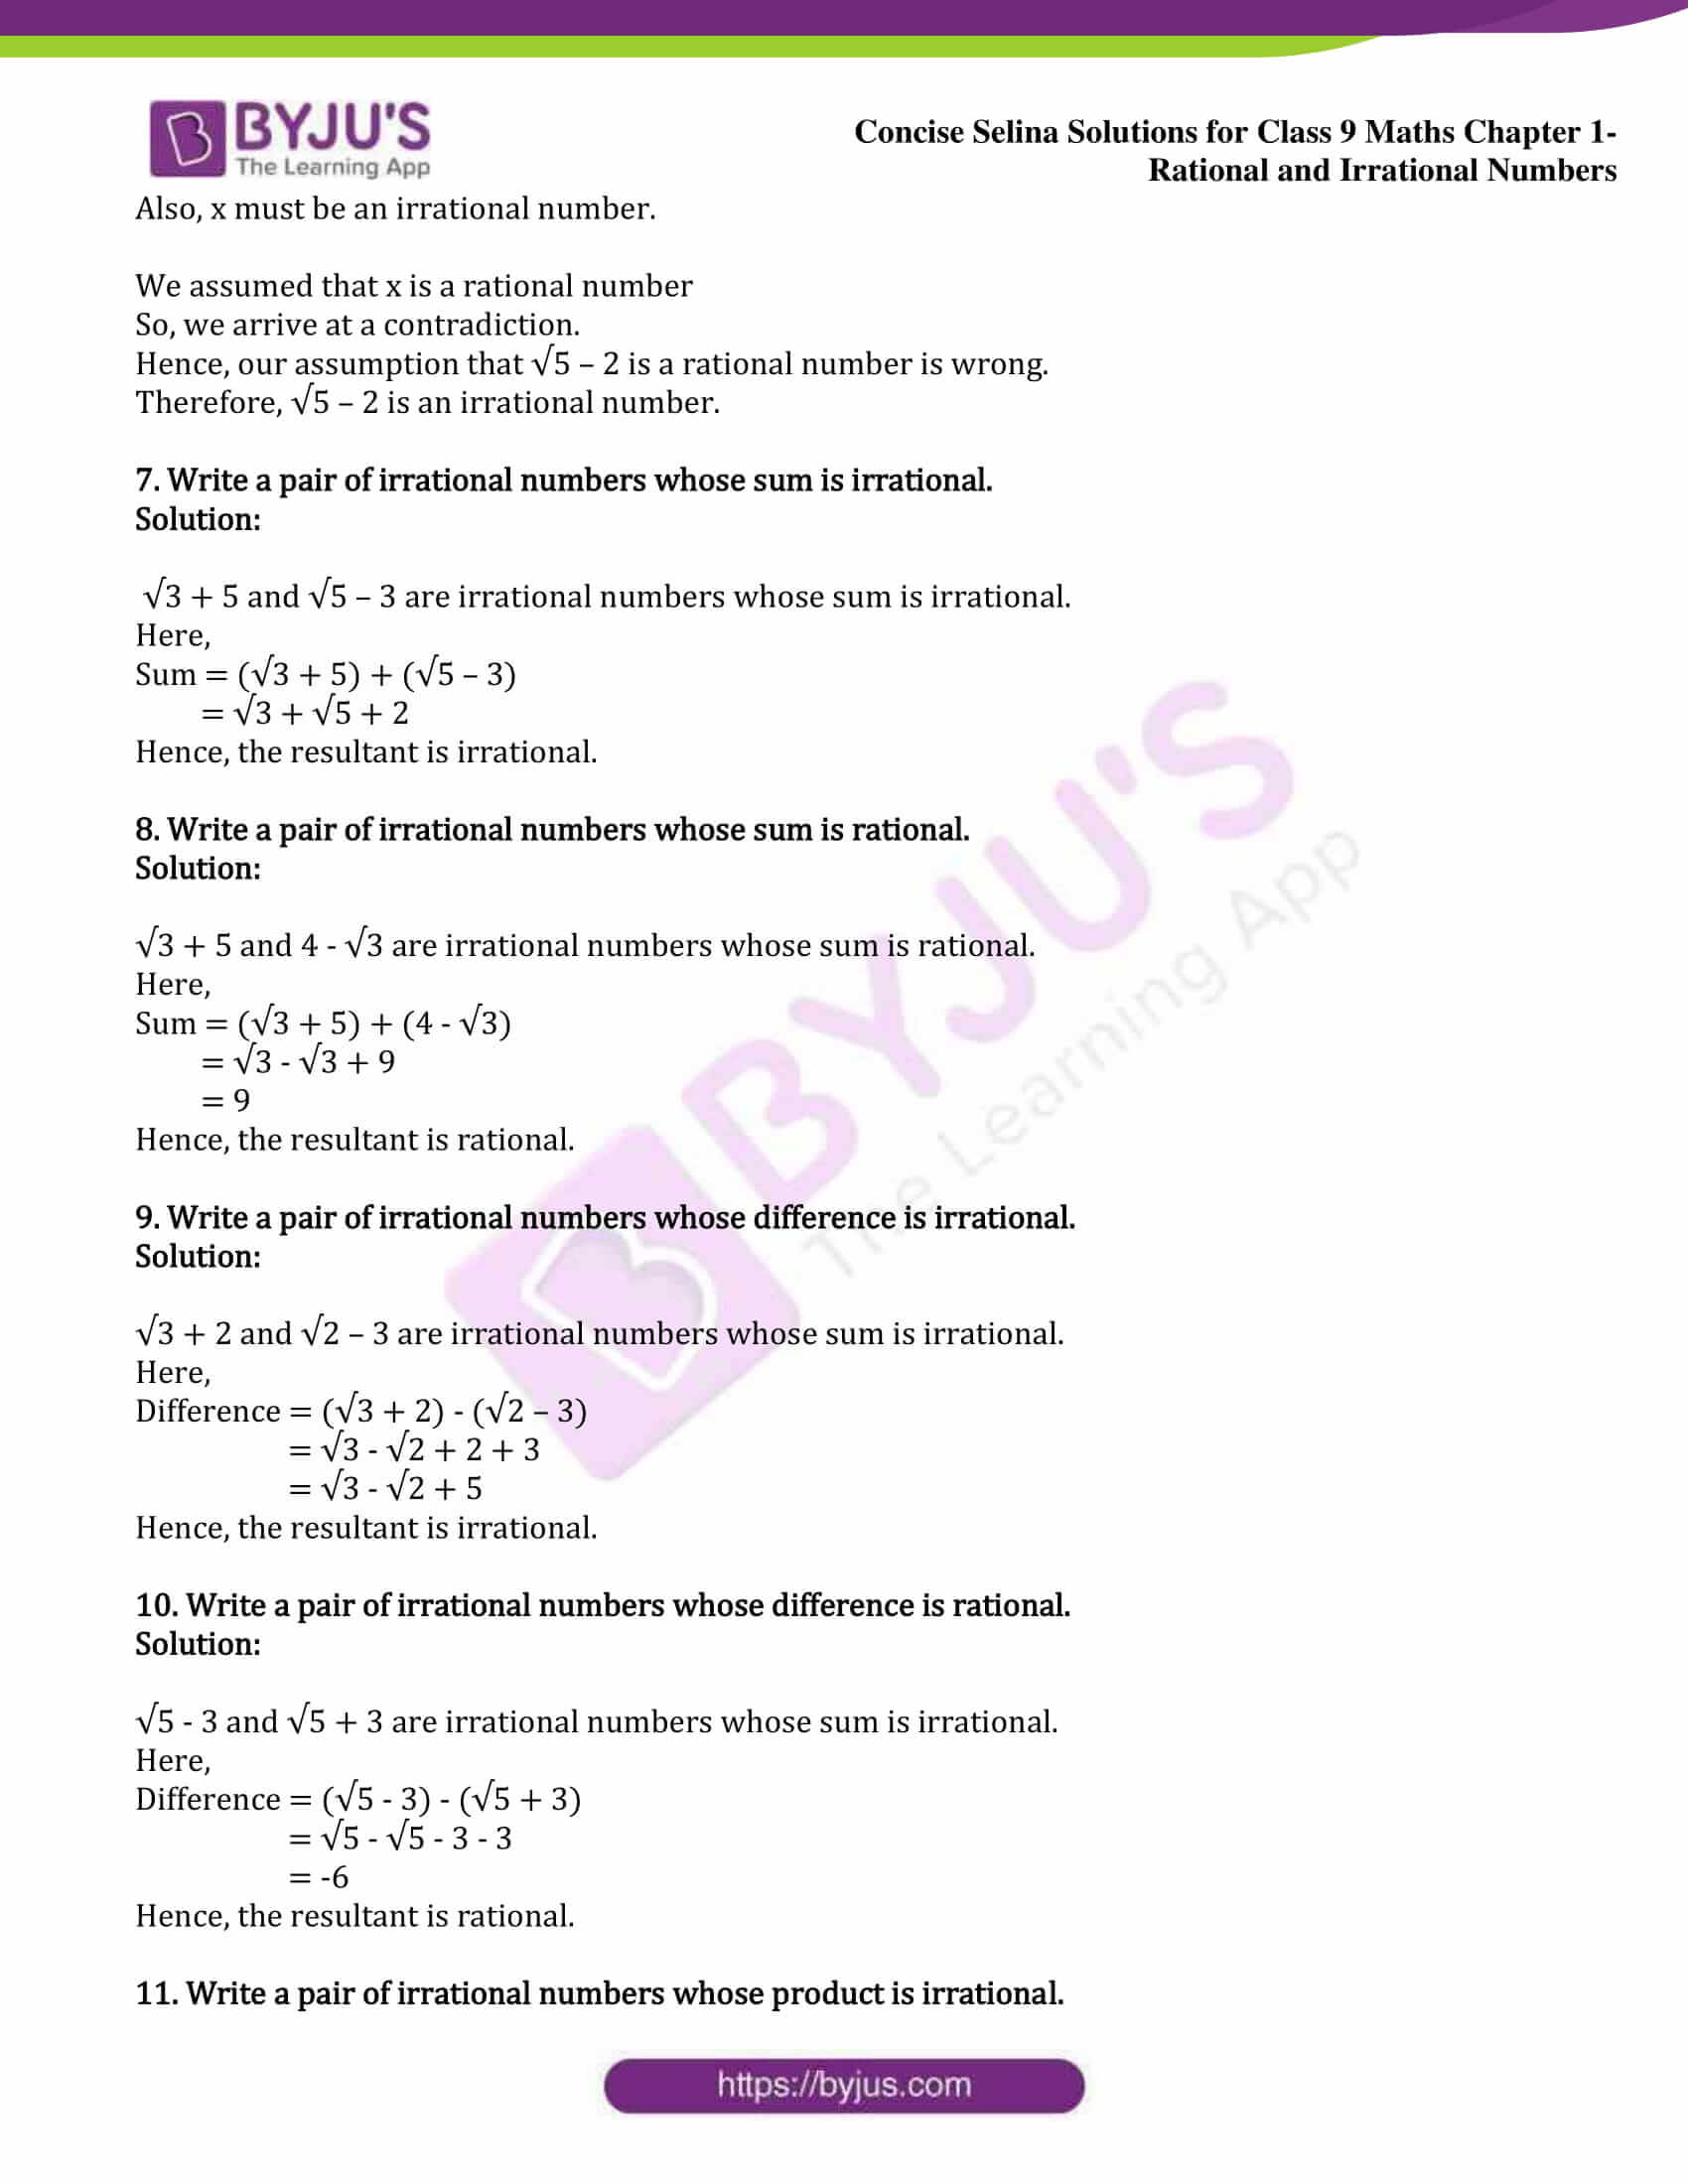 icse class 9 maths may13 selina solutions chapter 1 rational and irrational numbers 10